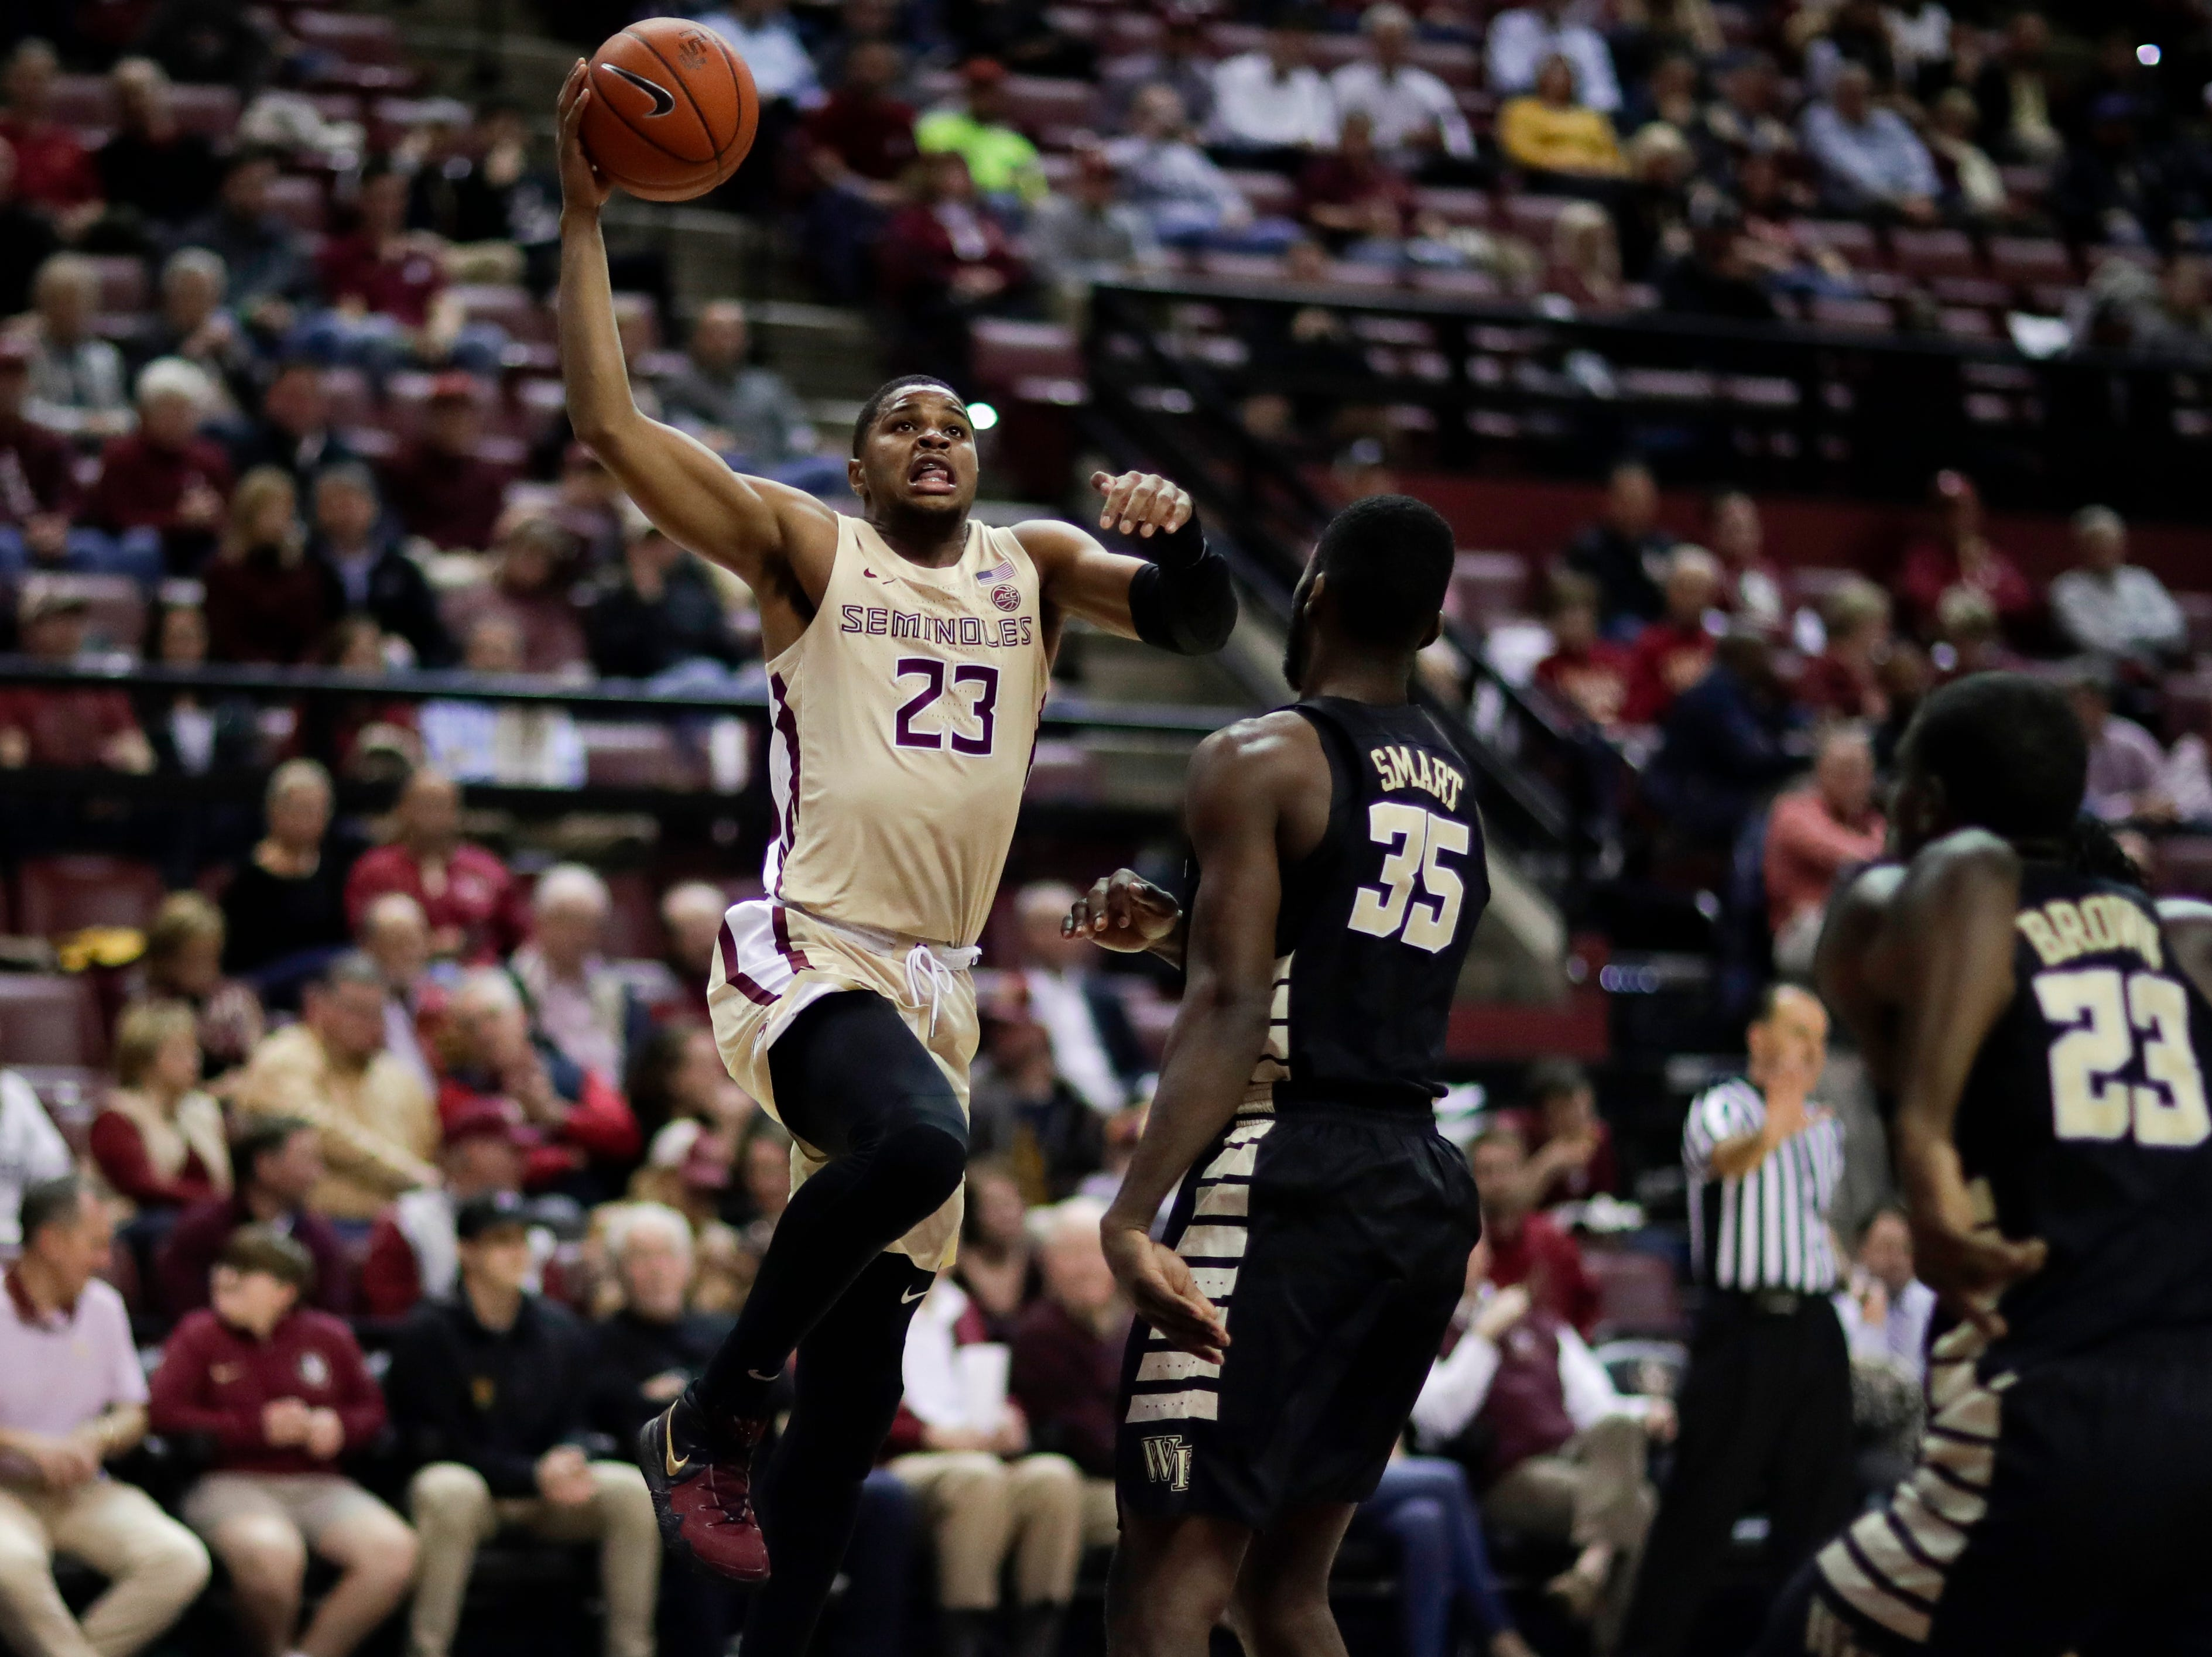 Florida State Seminoles guard M.J. Walker (23) goes up for a shot during a game between FSU and Wake Forest at the Donald L. Tucker Civic Center Wednesday, Feb. 13, 2019.